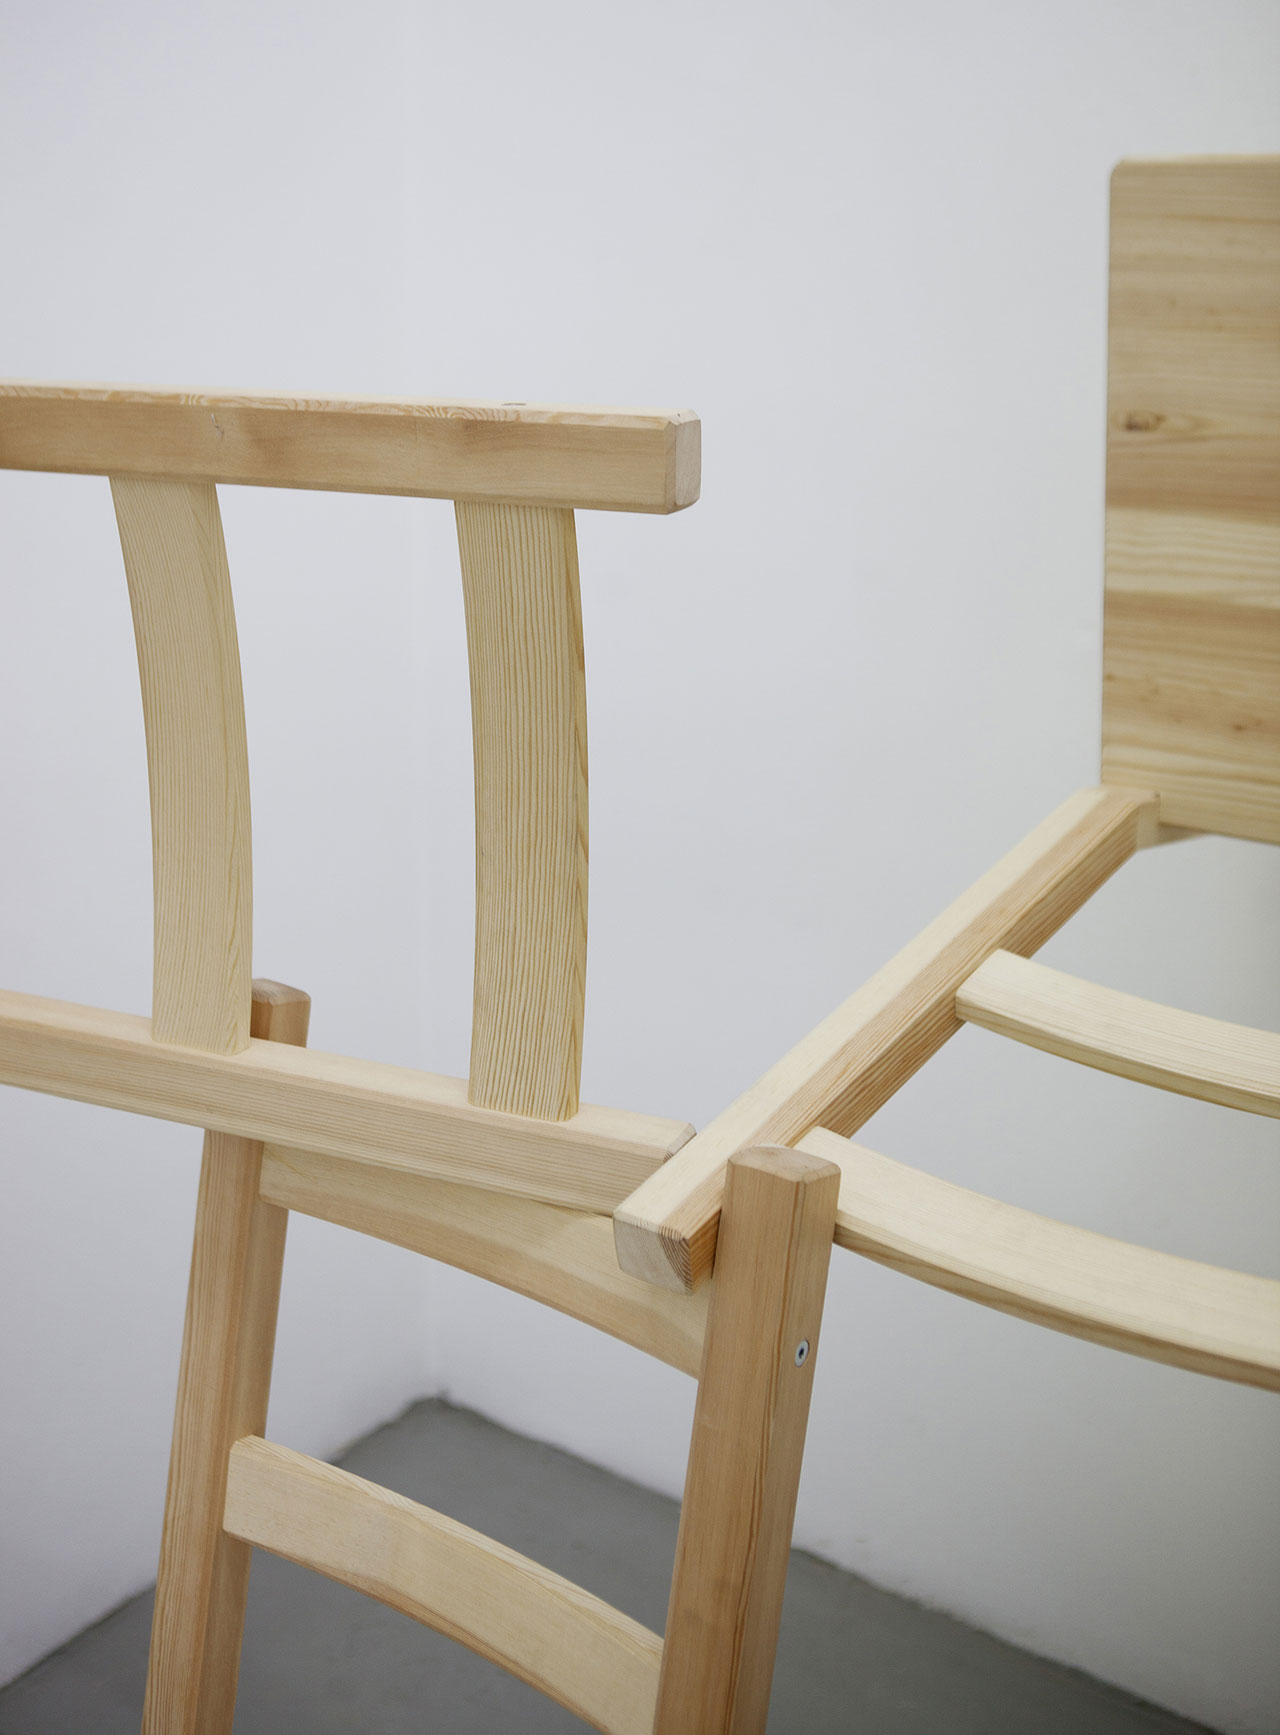 Michael Johansson, Corner piece (detail), 2018, 3 wooden chairs, 139x139x134,5 cm. Courtesy: The Flat – Massimo Carasi, Milan. Photo © Michael Johansson.